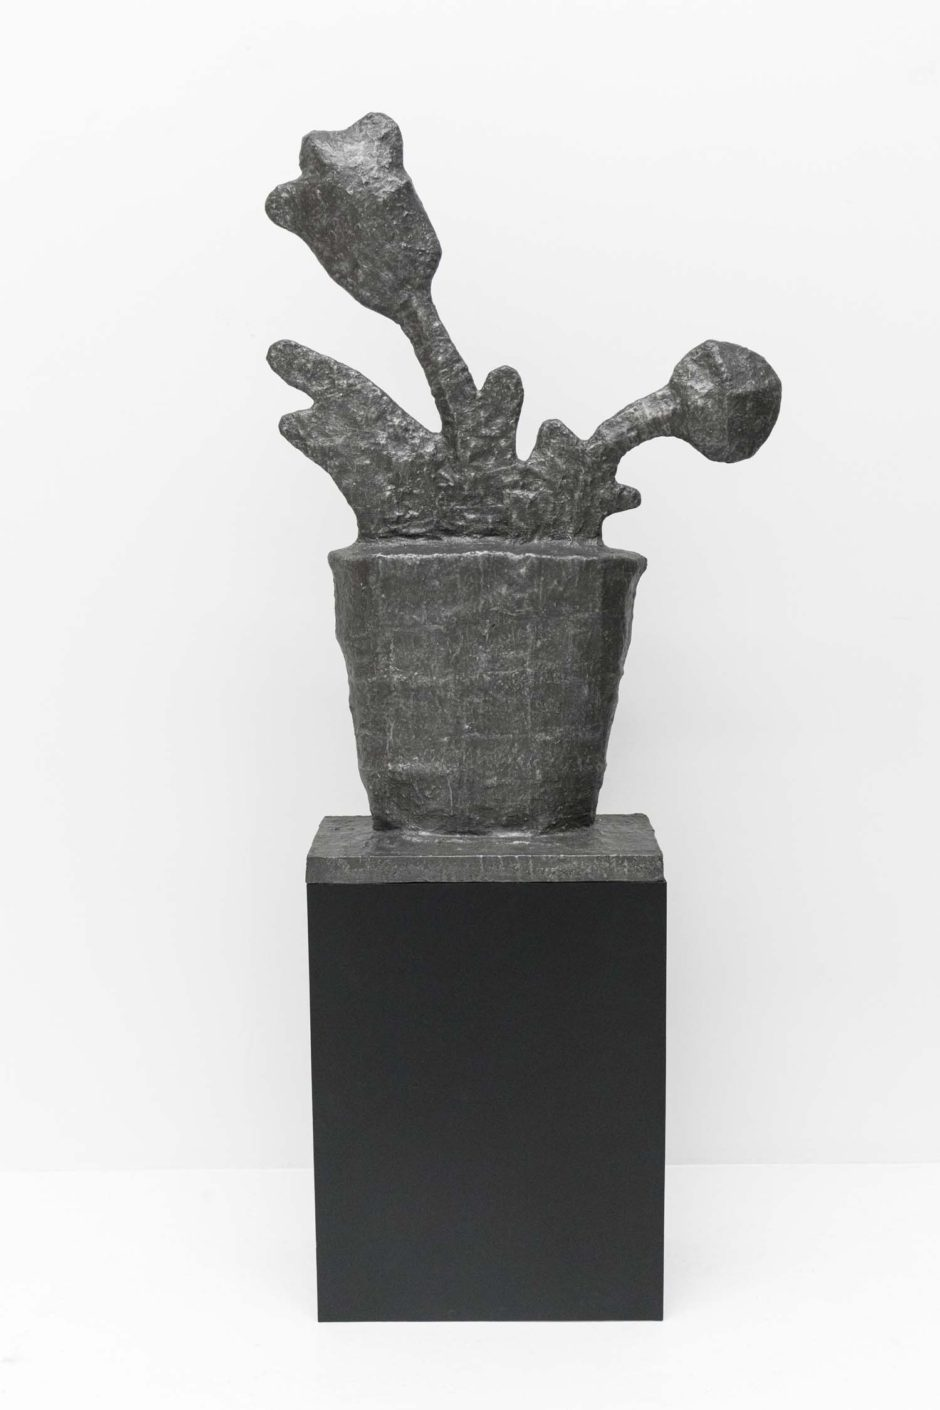 "Donald Baechler, ""Untitled (Flower)"", 2015, cast bronze, 42 x 20 x 10 inches, 106.5 x 51 x 25.5 cm"